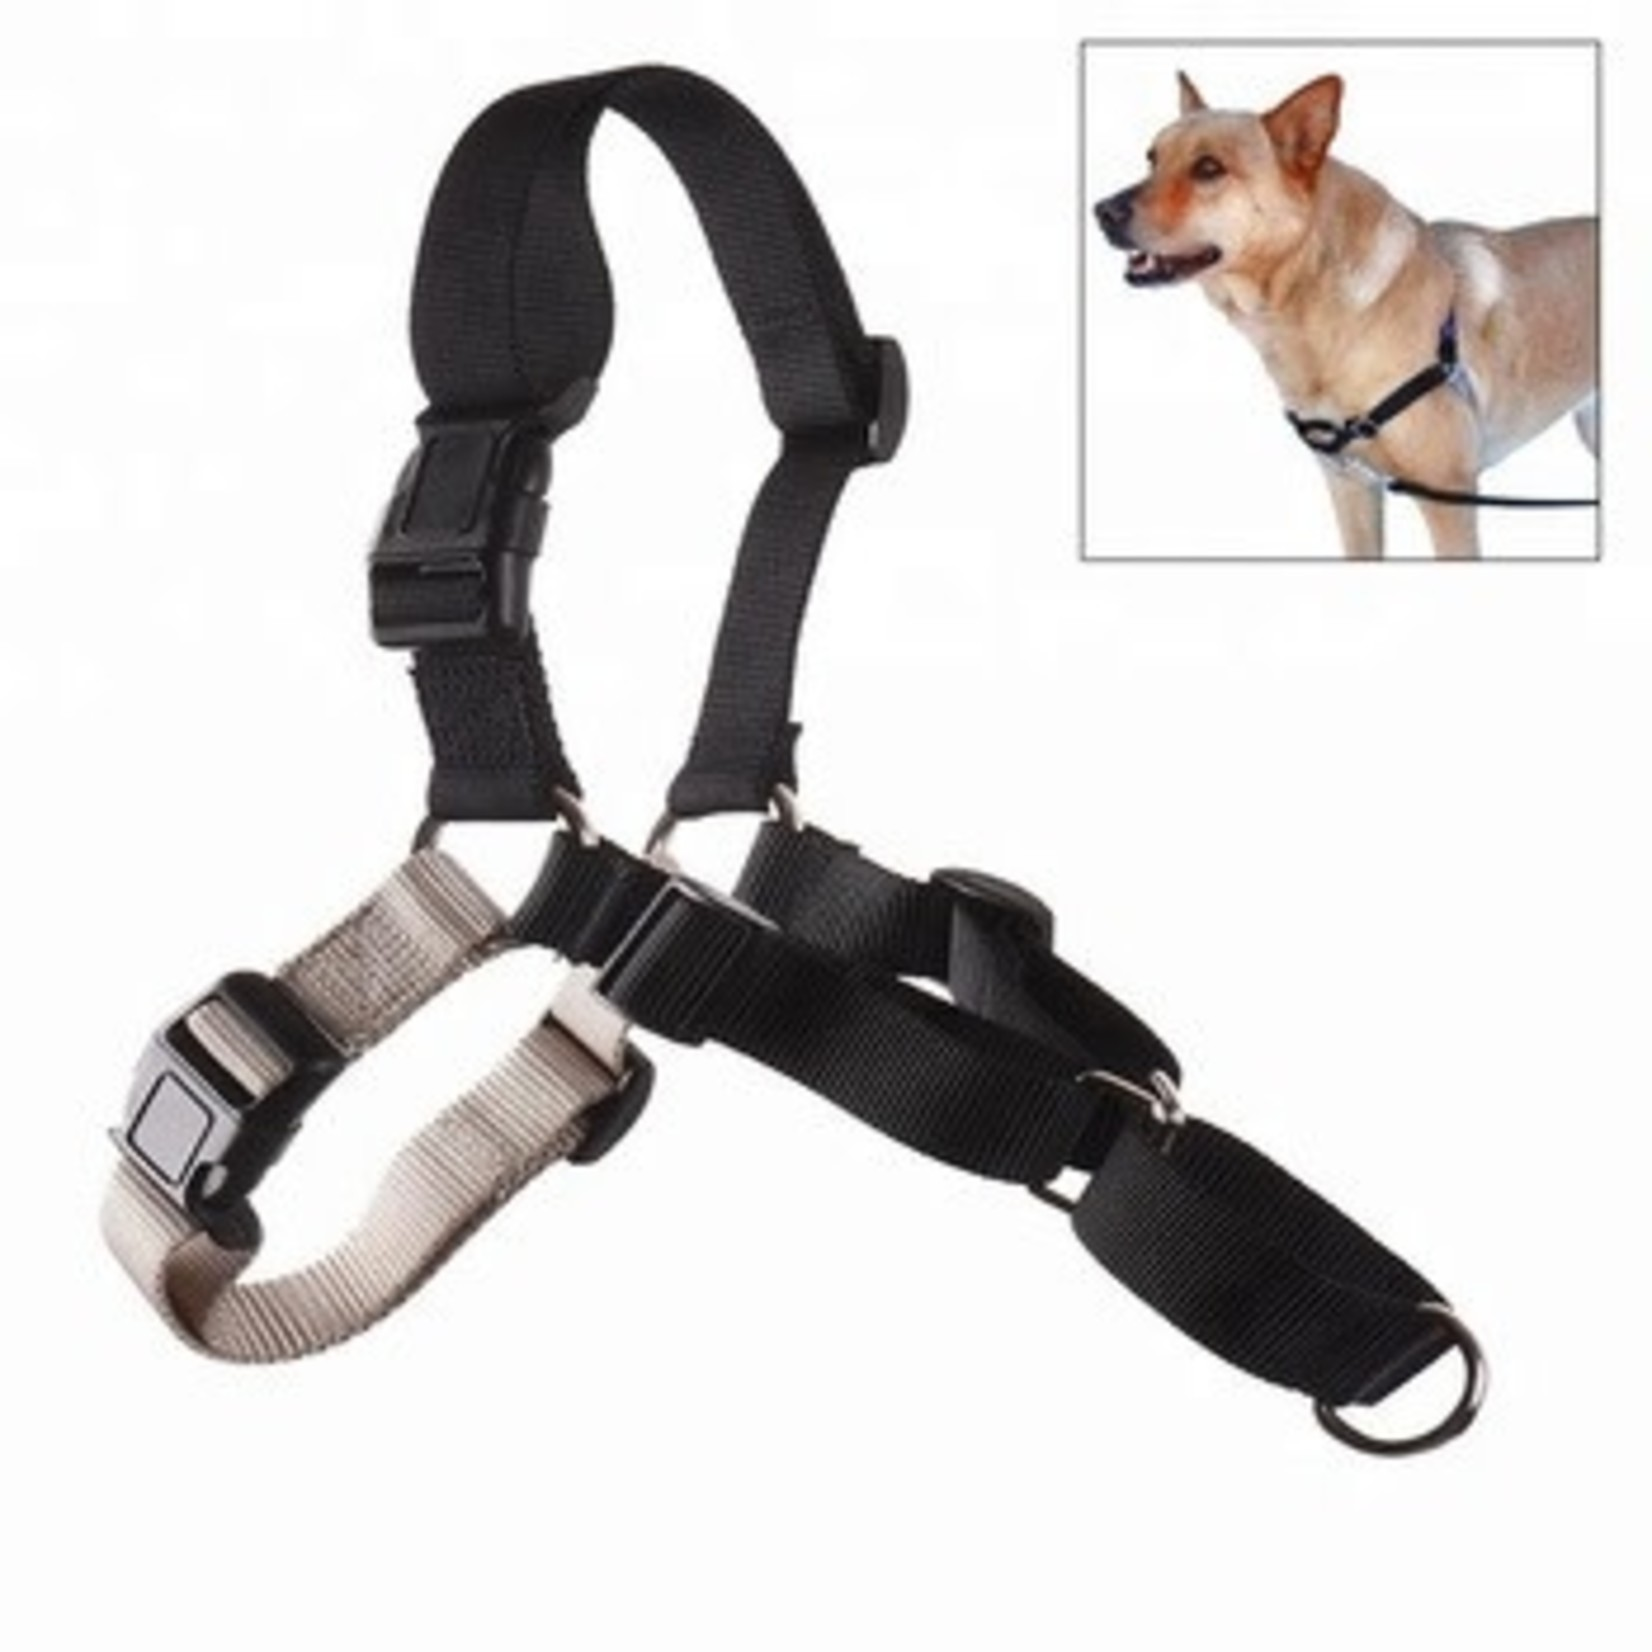 Pet Safe / Radio Systems Corp. Easy Walk Harness Black Medium/Large